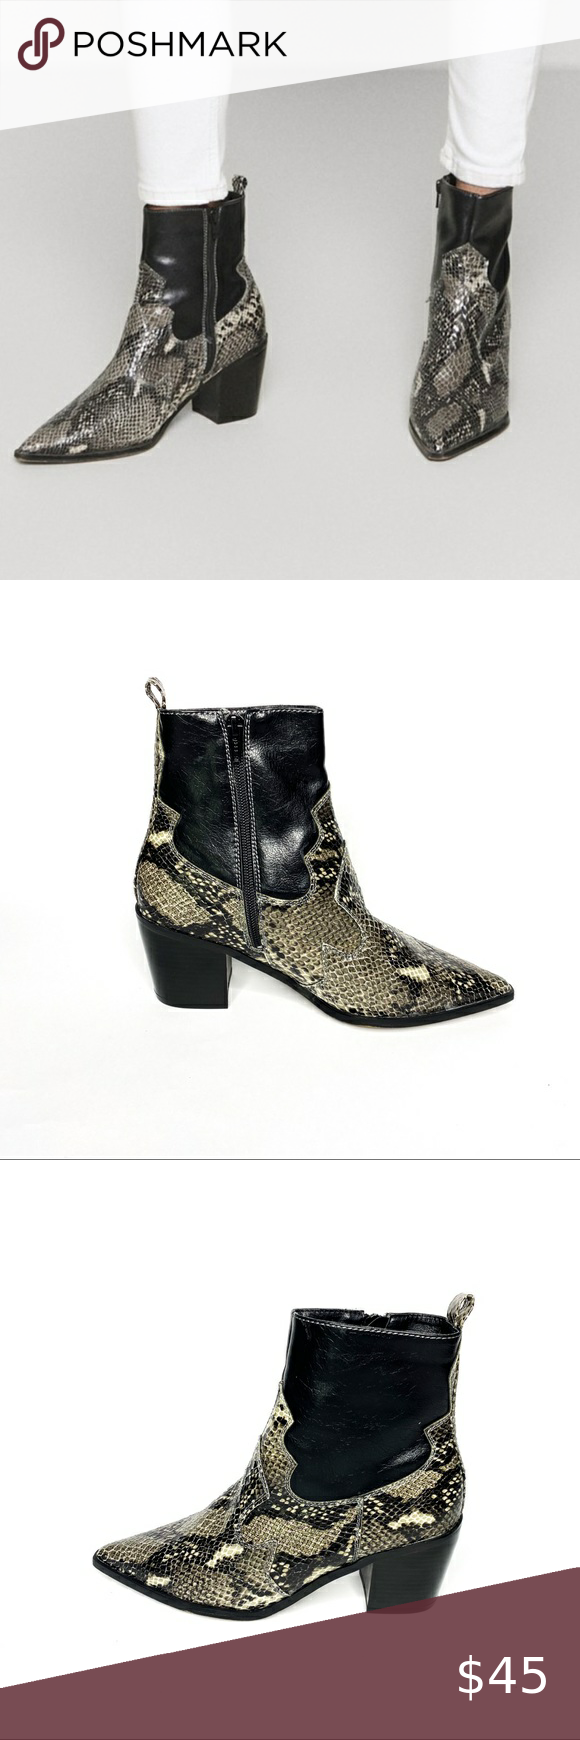 Topshop Snakeskin Ankle Boots in 2020